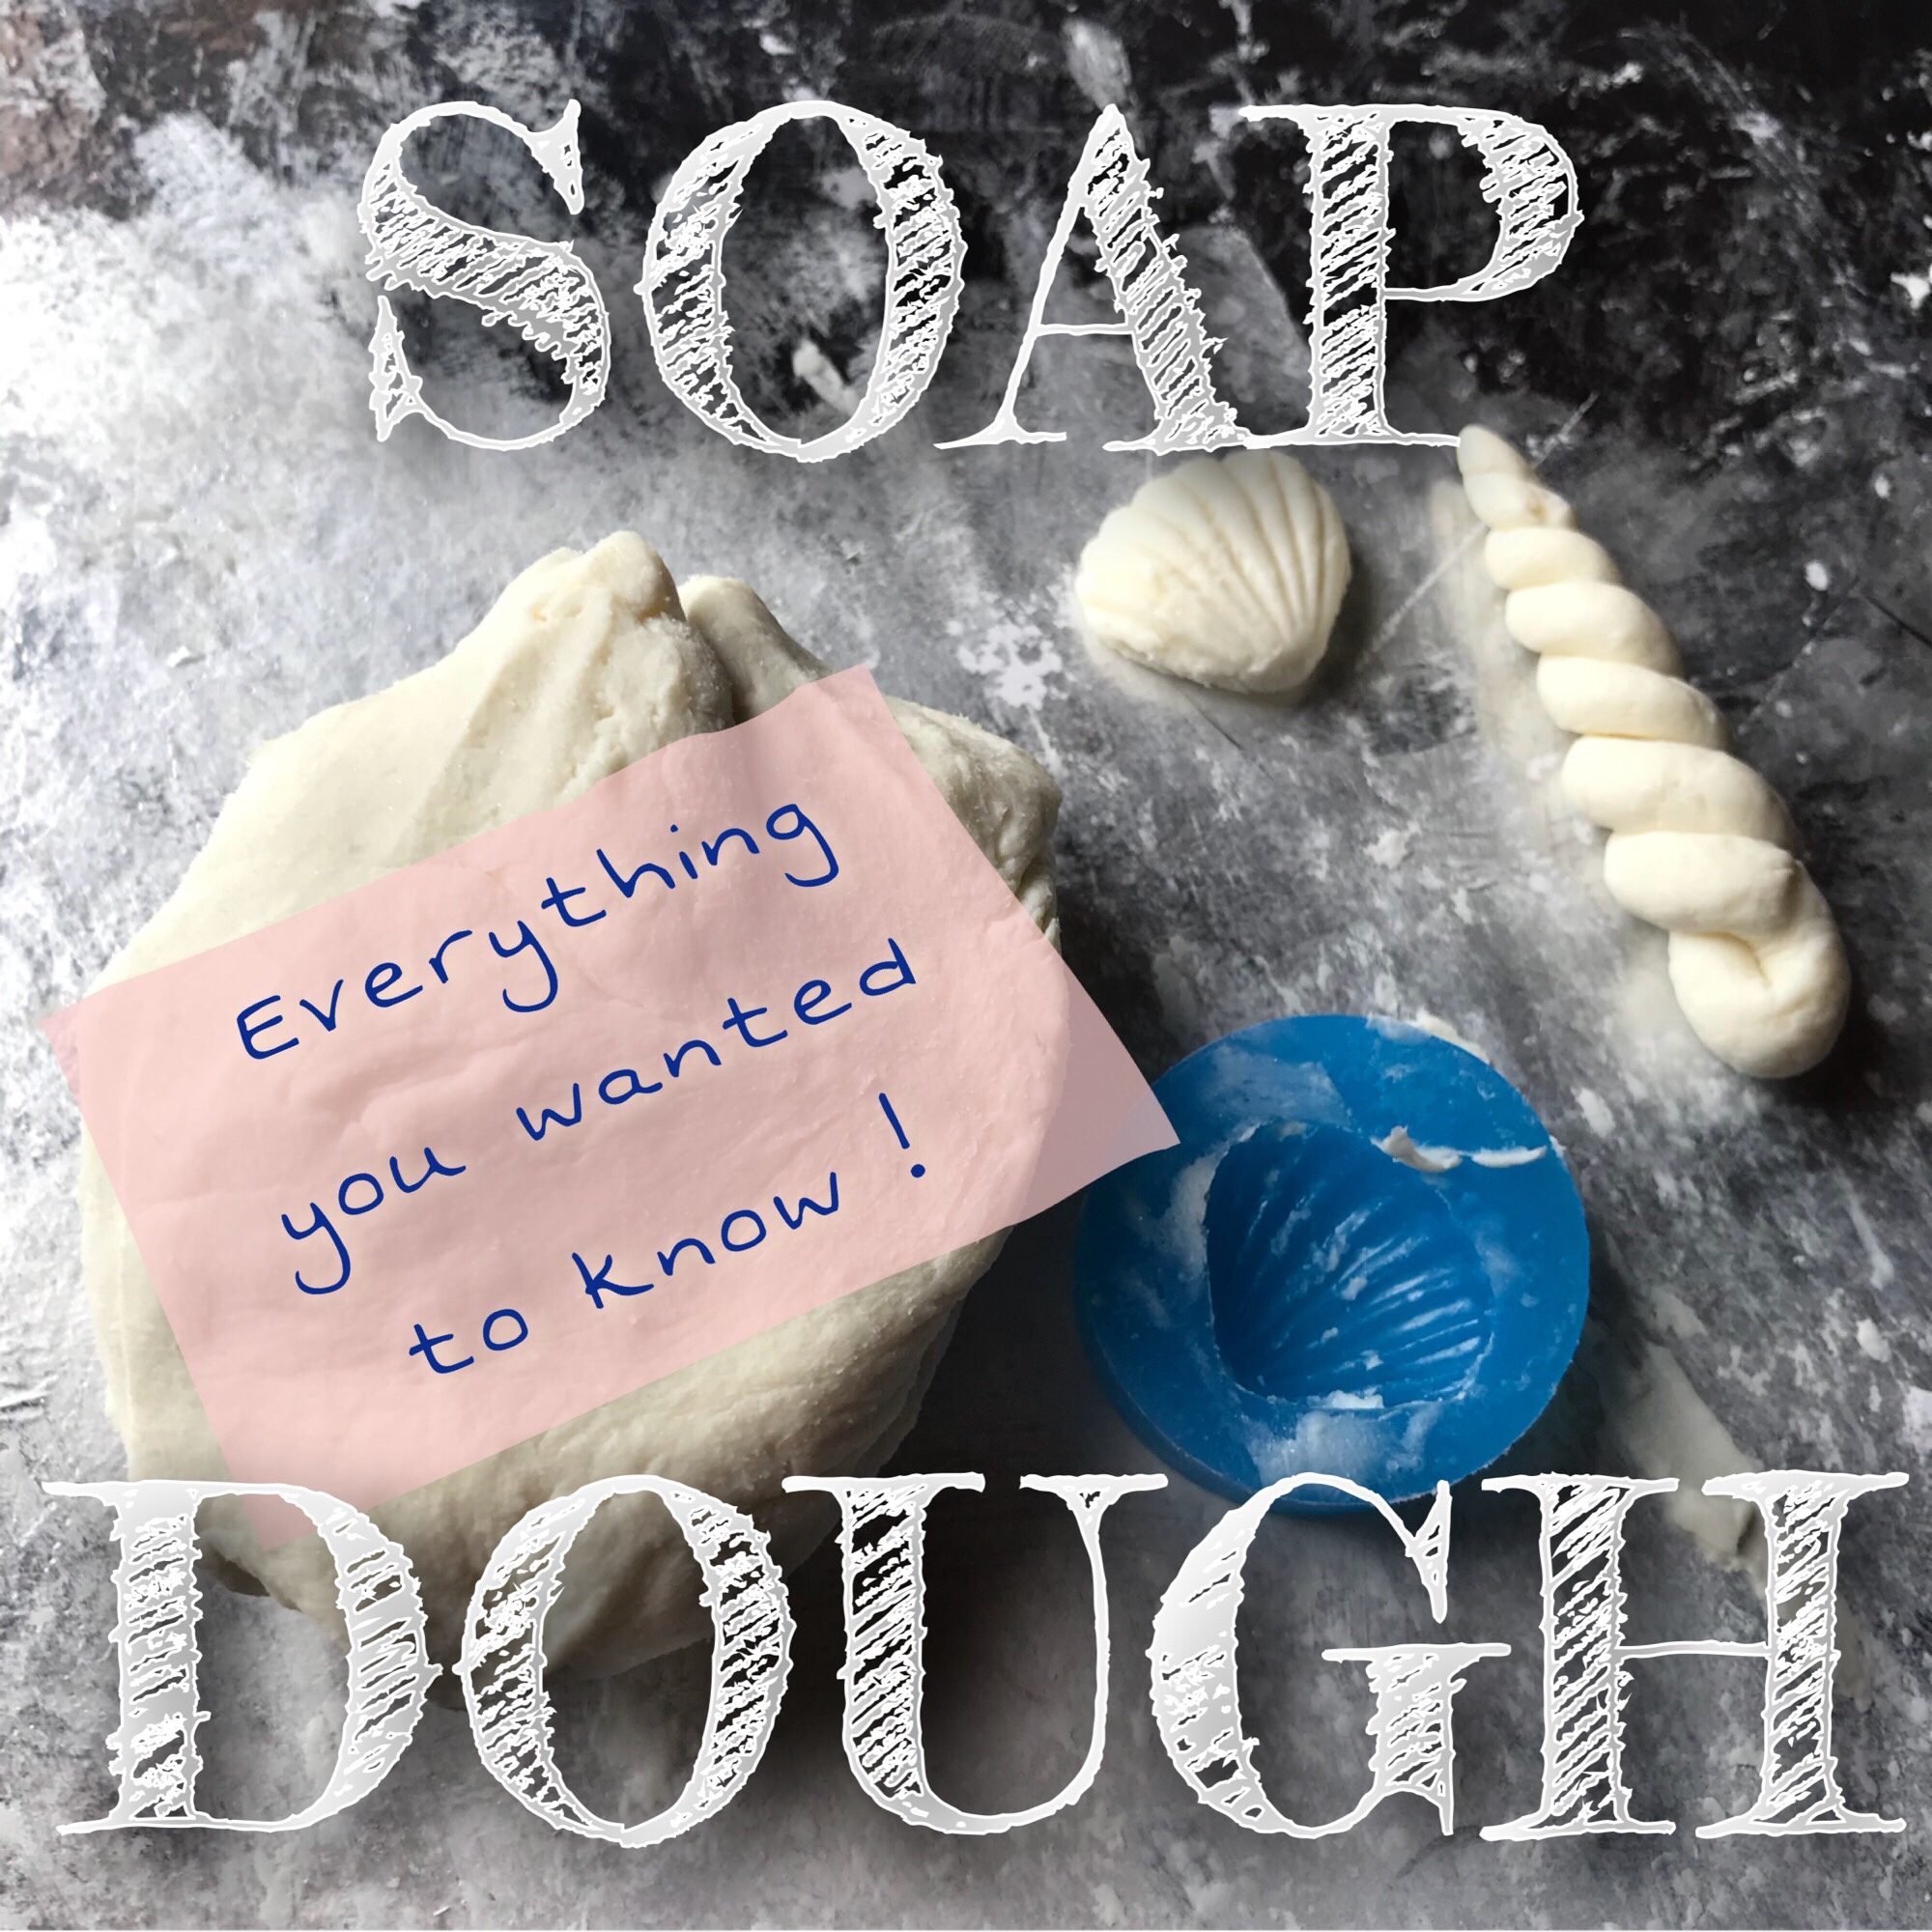 Soap dough